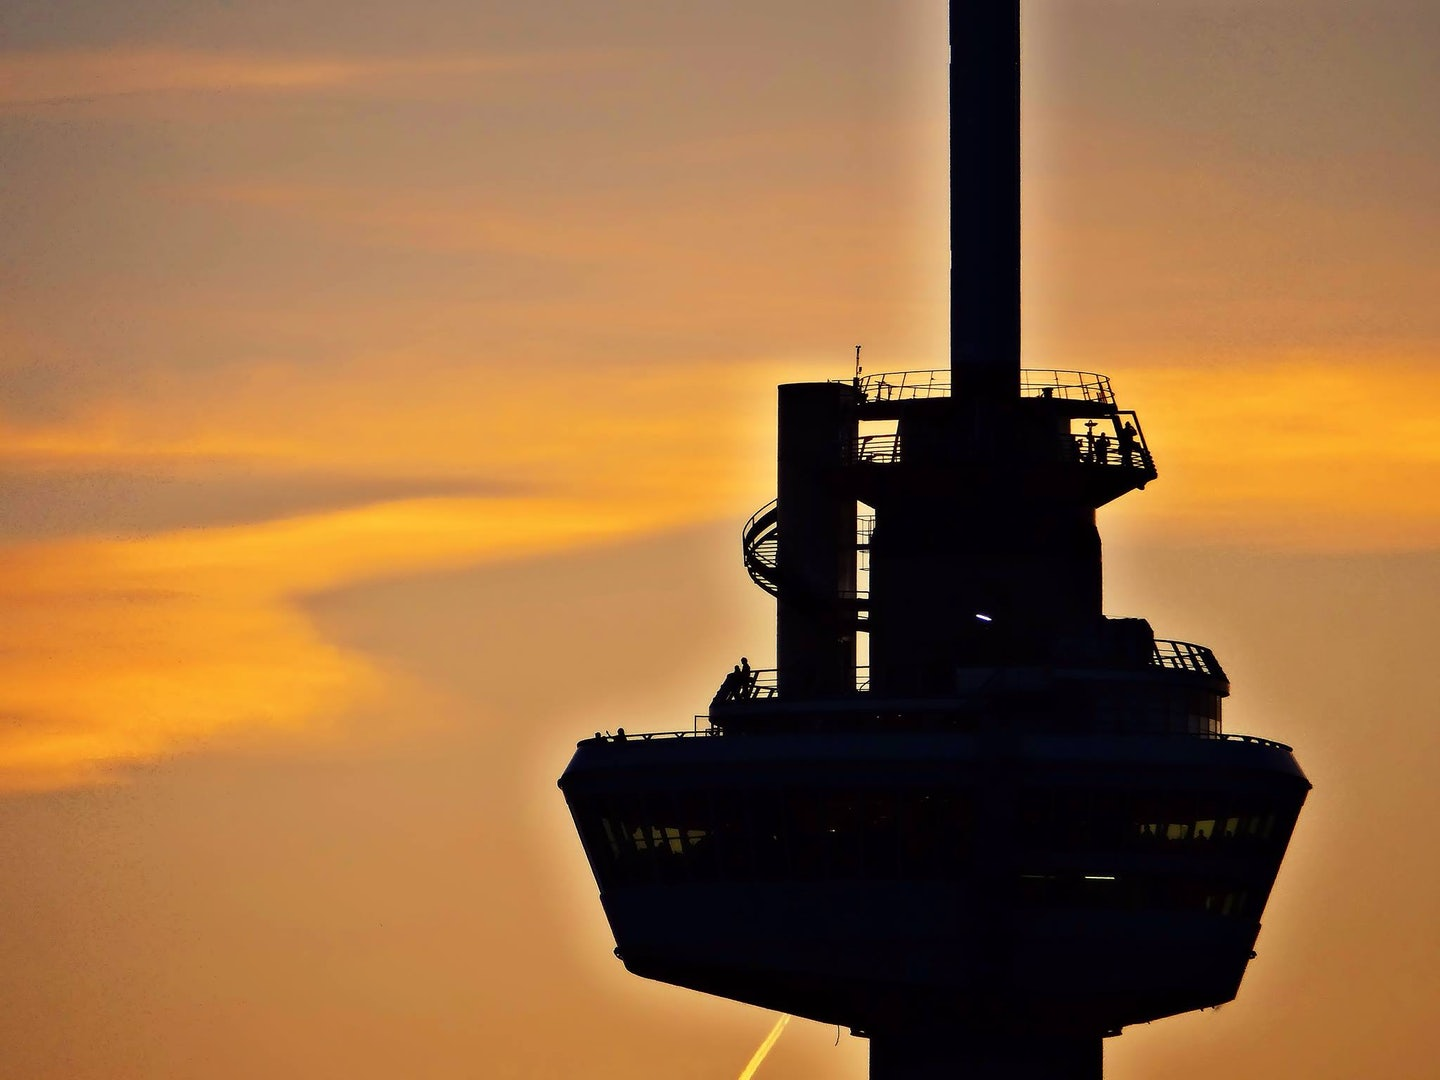 Euromast against an orange sky